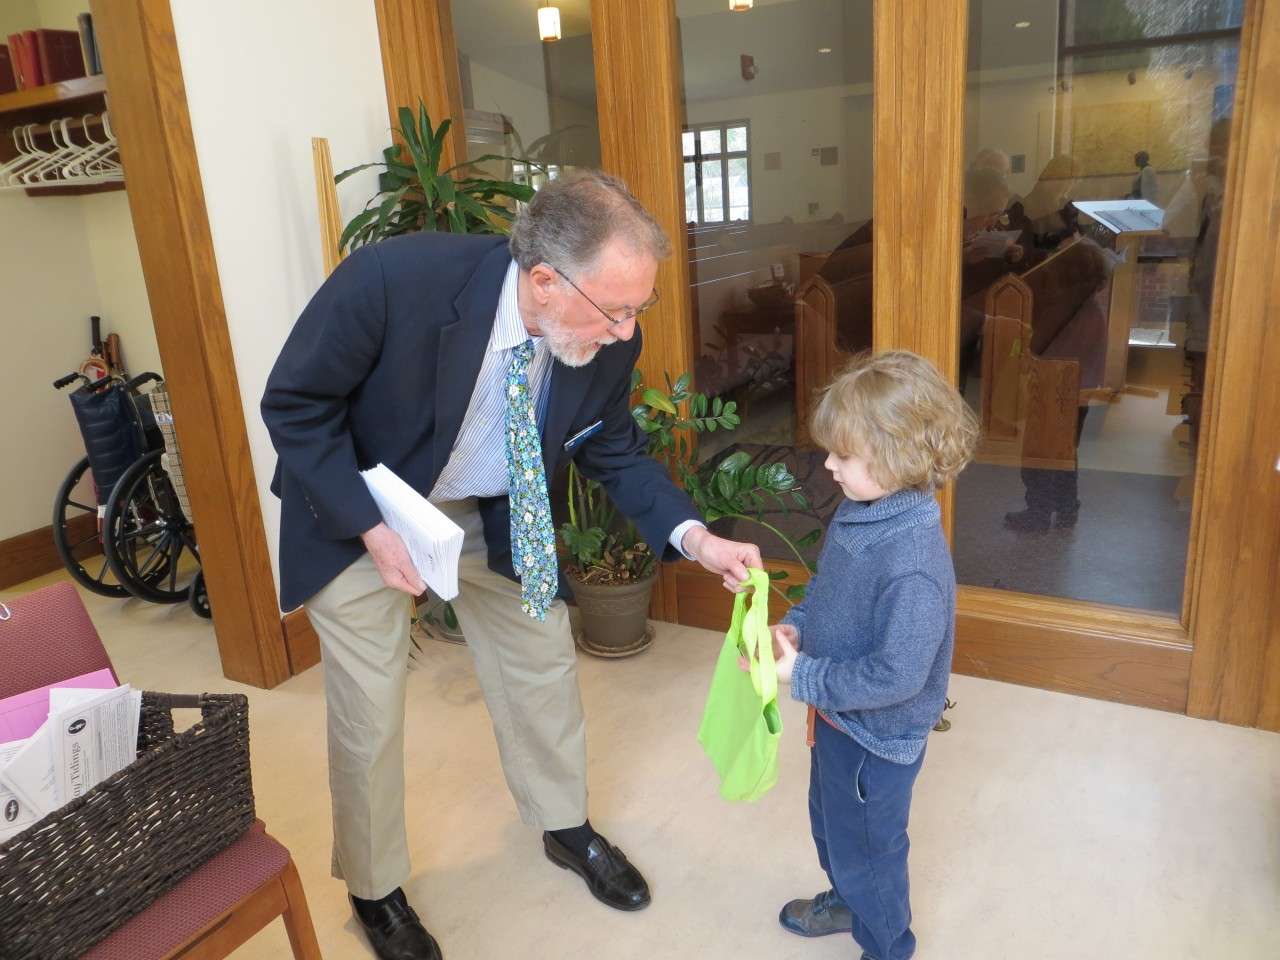 Usher Carl hands out a bag with puzzles and toys for youngsters to use during the service.